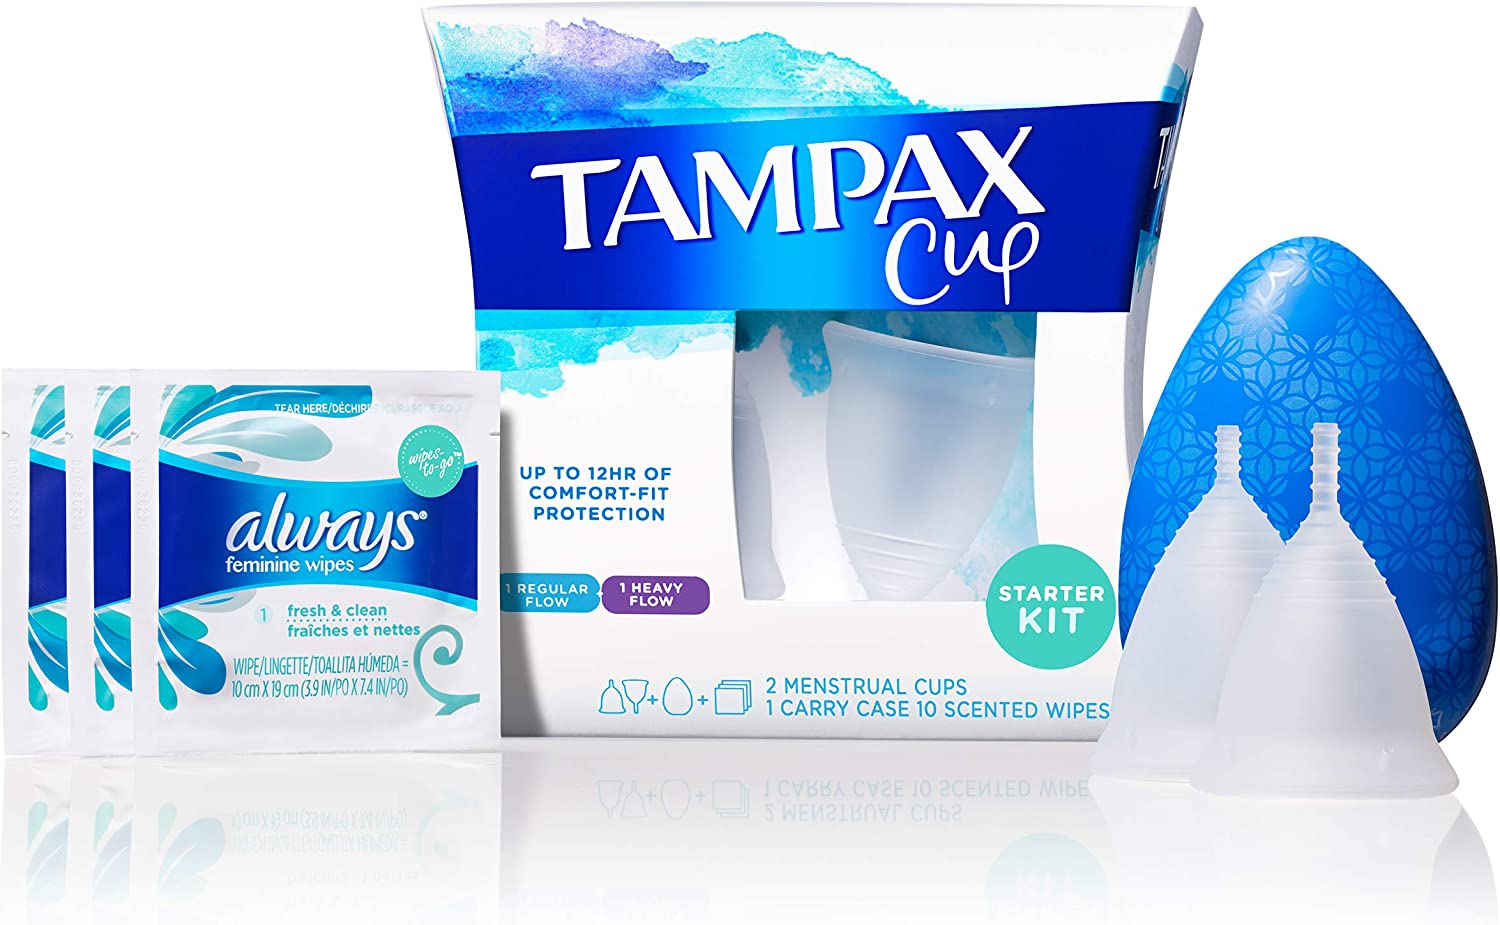 Tampax Menstrual Cups Starter Kit, Tampon Alternative, Heavy and